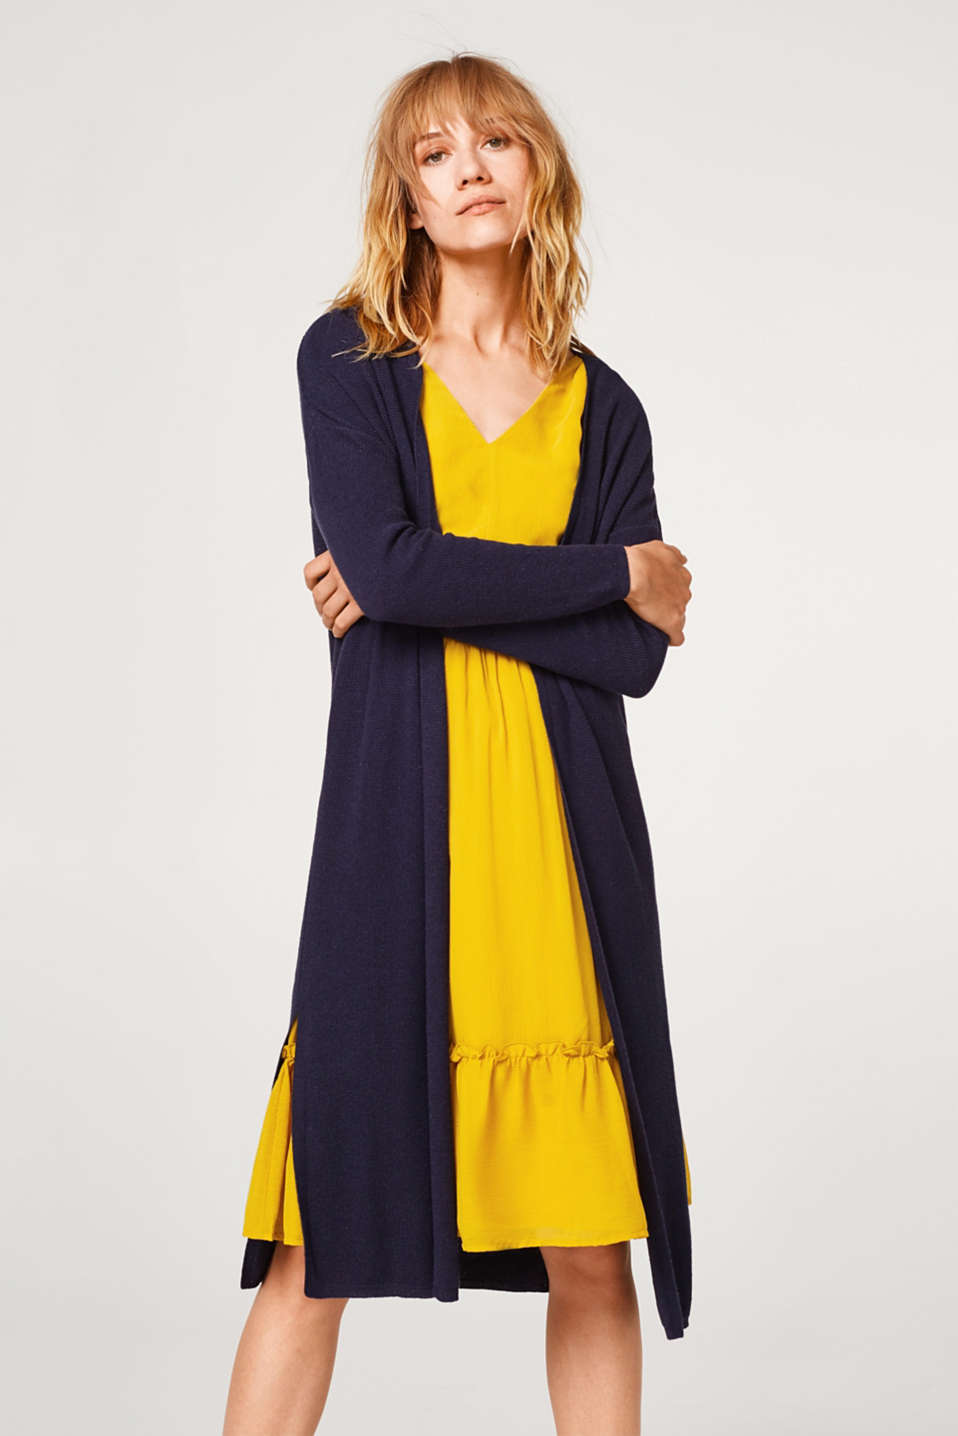 Esprit - À teneur en lin : le cardigan long finement texturé